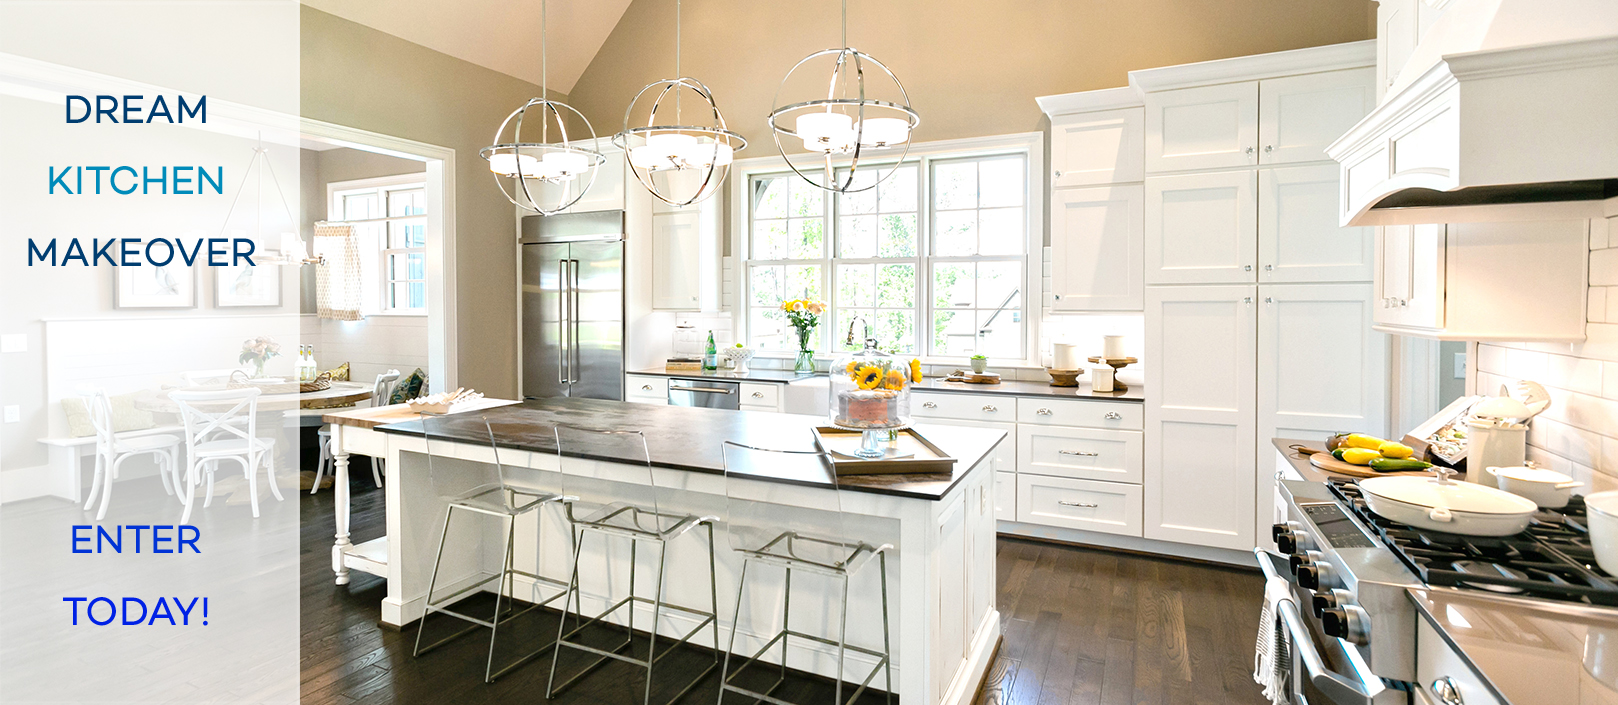 Dream Kitchen Makeover image with text